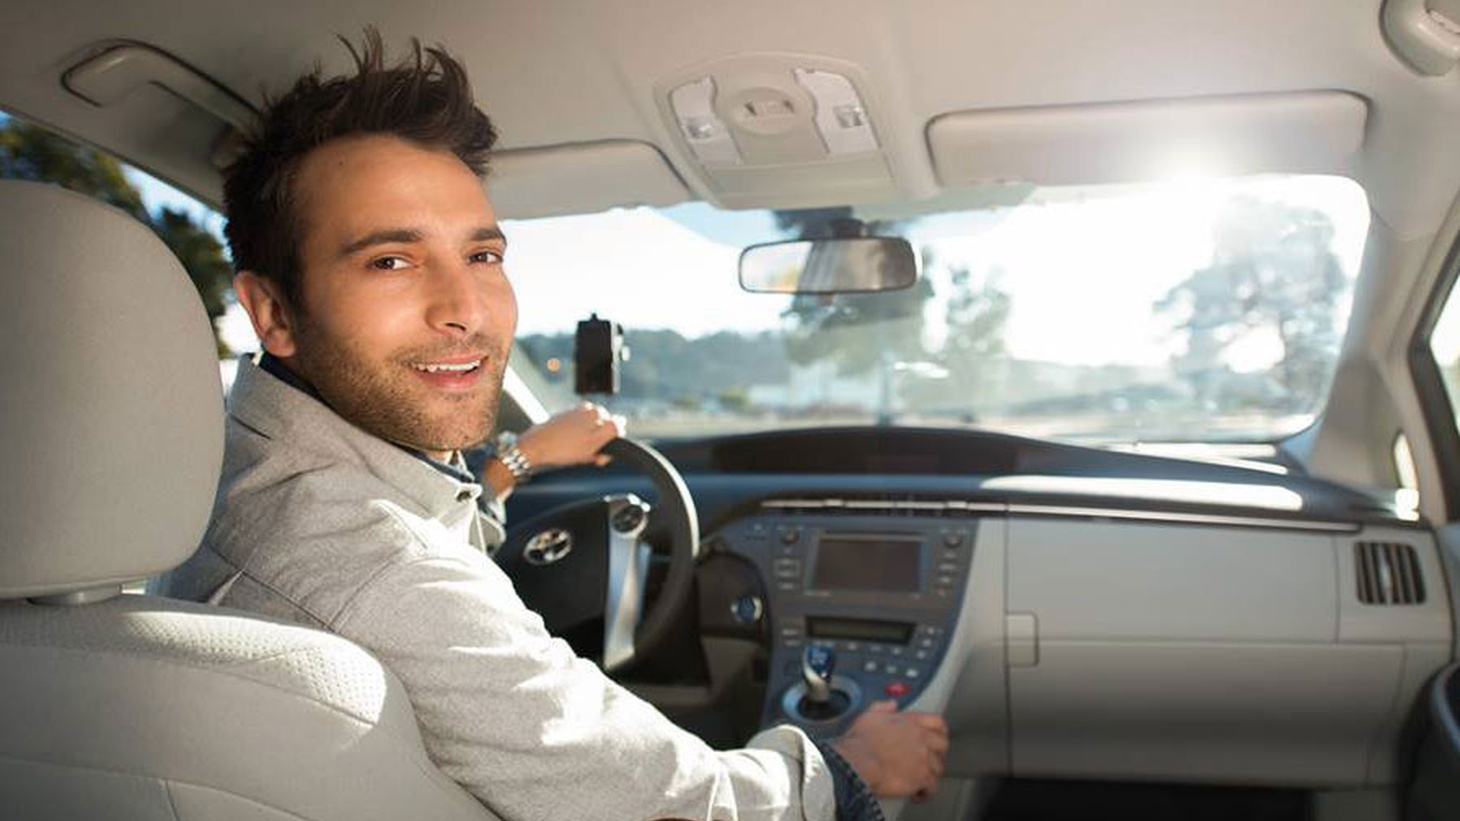 Uber and other Internet companies use mobile phone apps to connect passengers with non-professional drivers. Cheaper than traditional taxis, is that unfair competition?